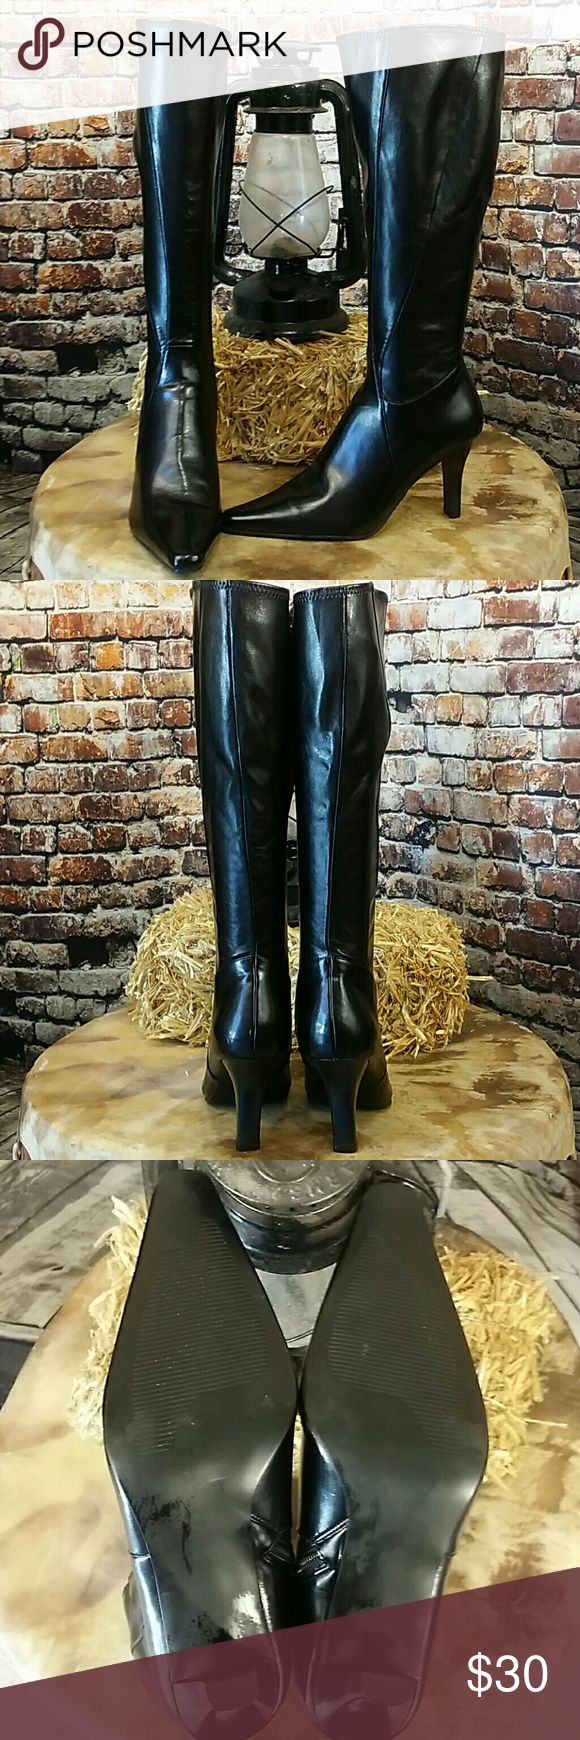 "Sexy Stiletto Black Boots Great pair of winter boots to go with those skinny jeans or a winter skirt. 3.25"" heel. Size 6.5 Ellemenno Shoes Heeled Boots"